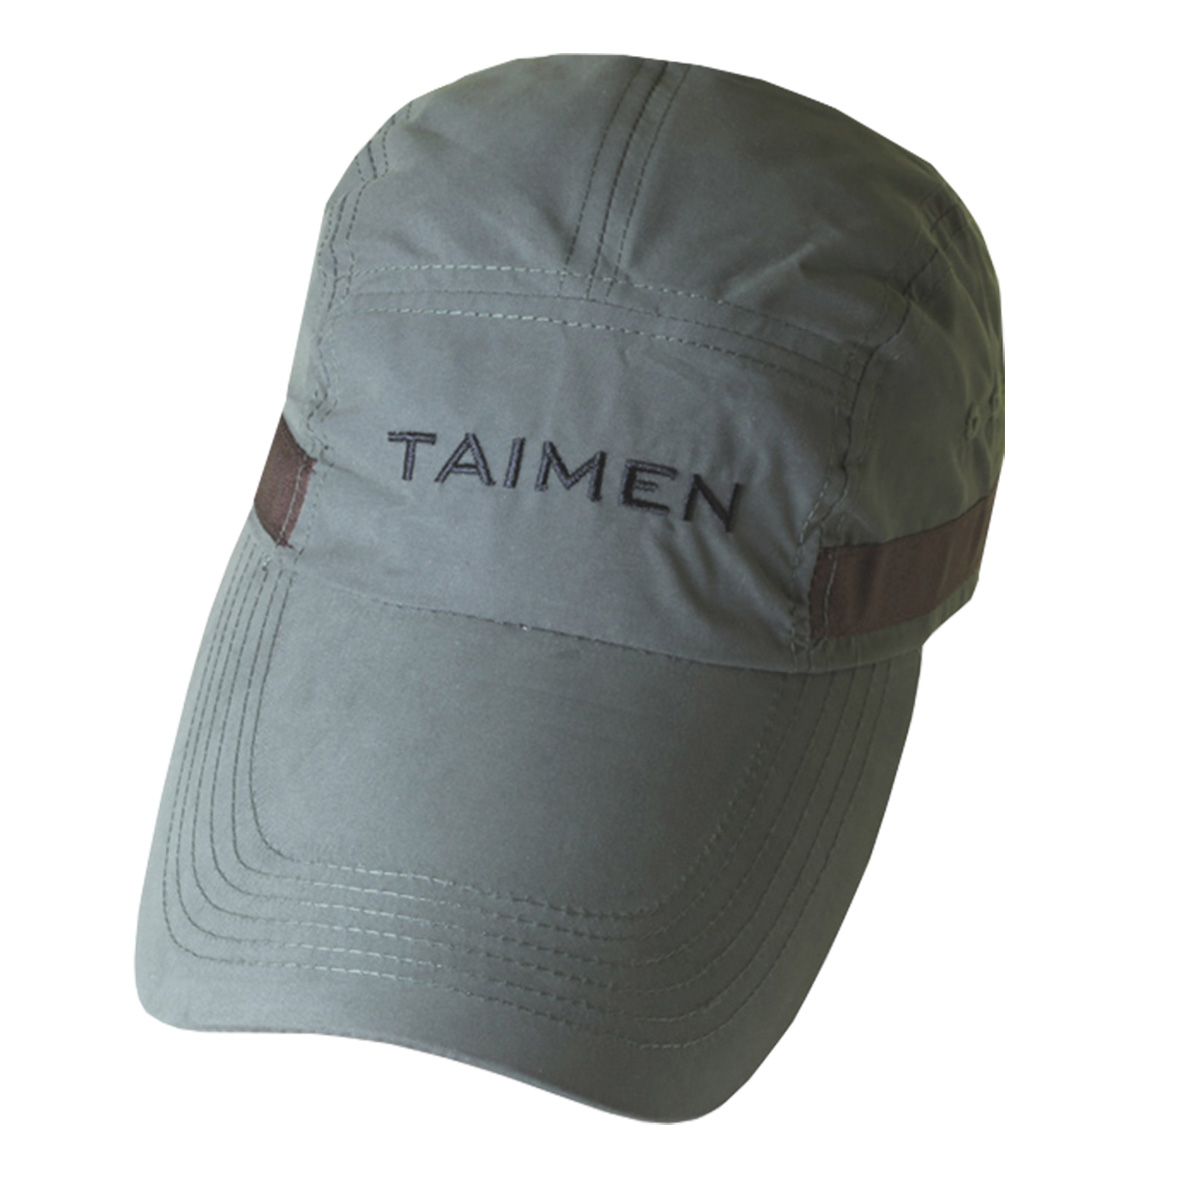 Taimen microfiber long bill cap fishing caps ebay for Long bill fishing hat